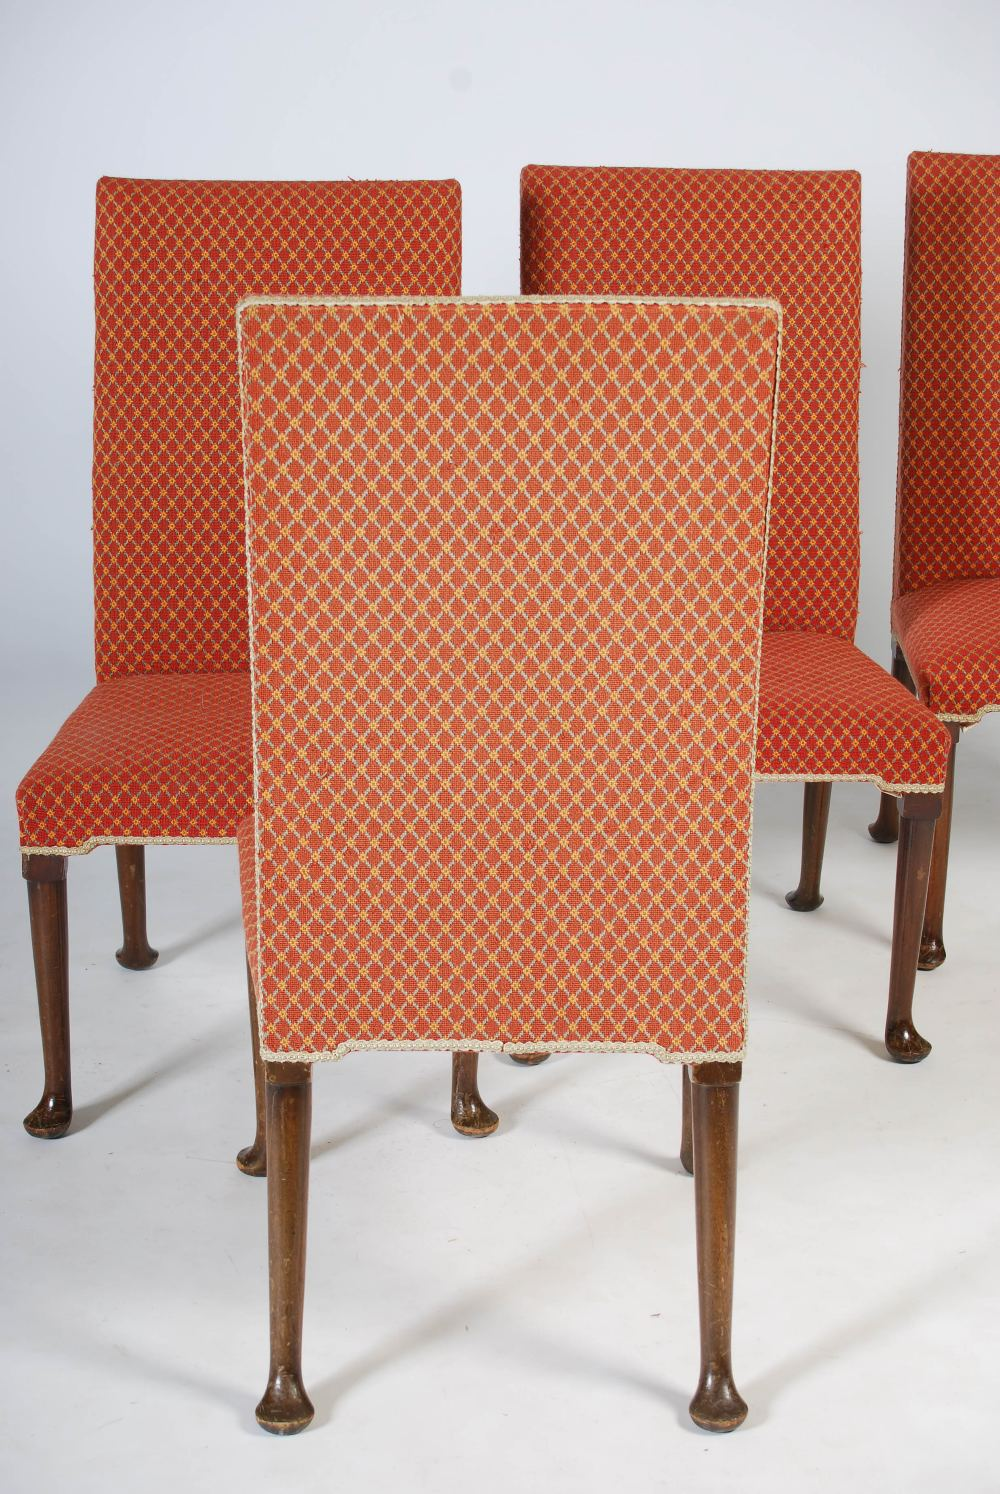 Lot 23 - A set of ten early 20th century mahogany dining chairs, the needlework backs and seats raised on